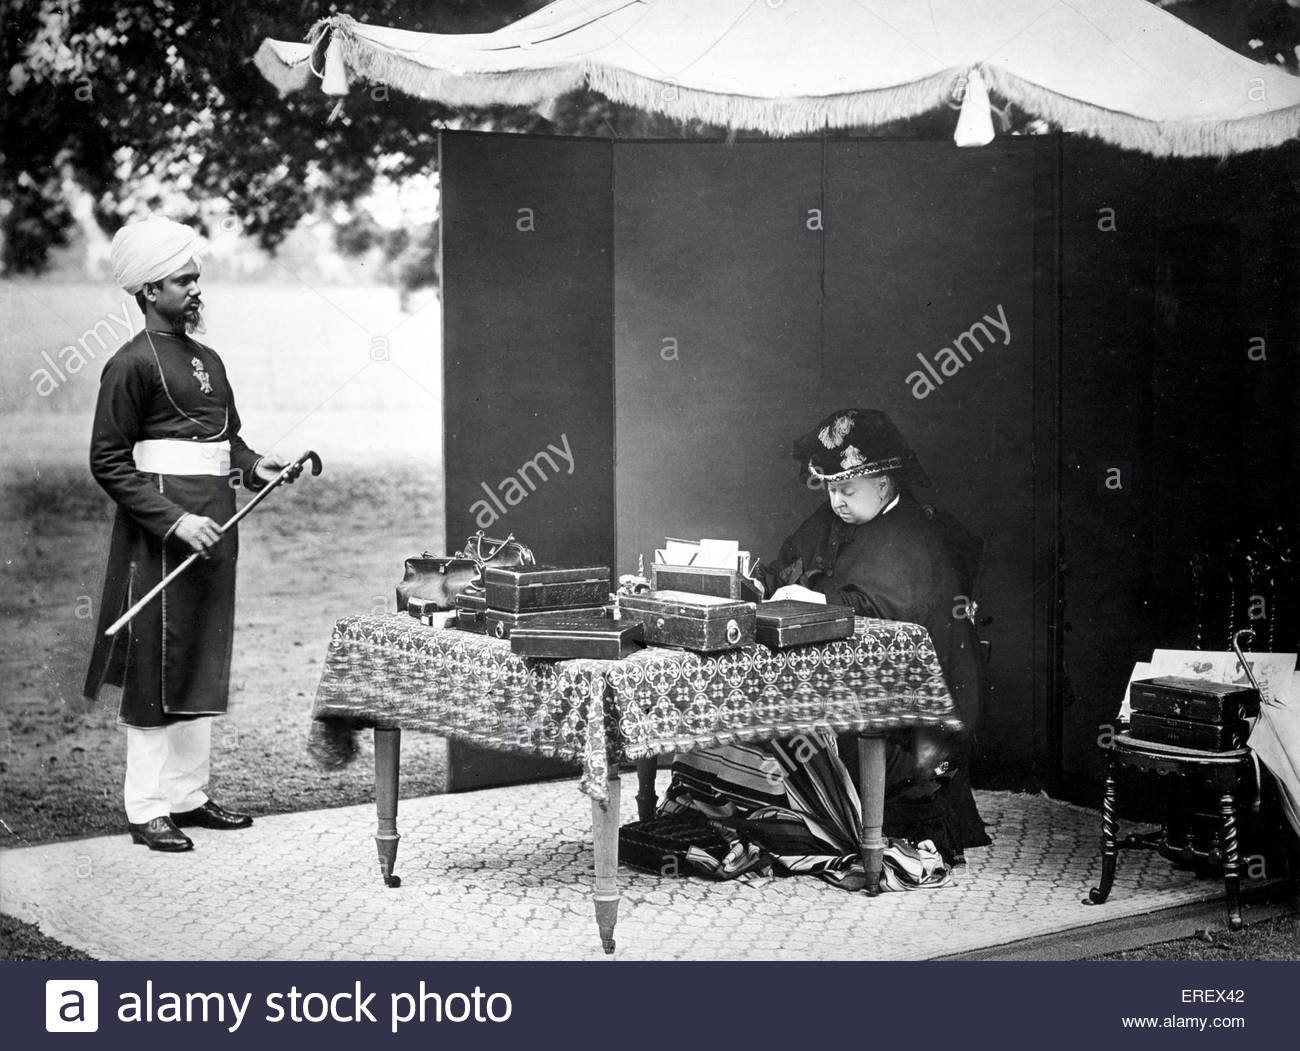 Queen Victoria attended to by Hafiz Abdul Karim, (the Munshi) 1893. Photograph taken by Hills & Saunders at - Stock Image